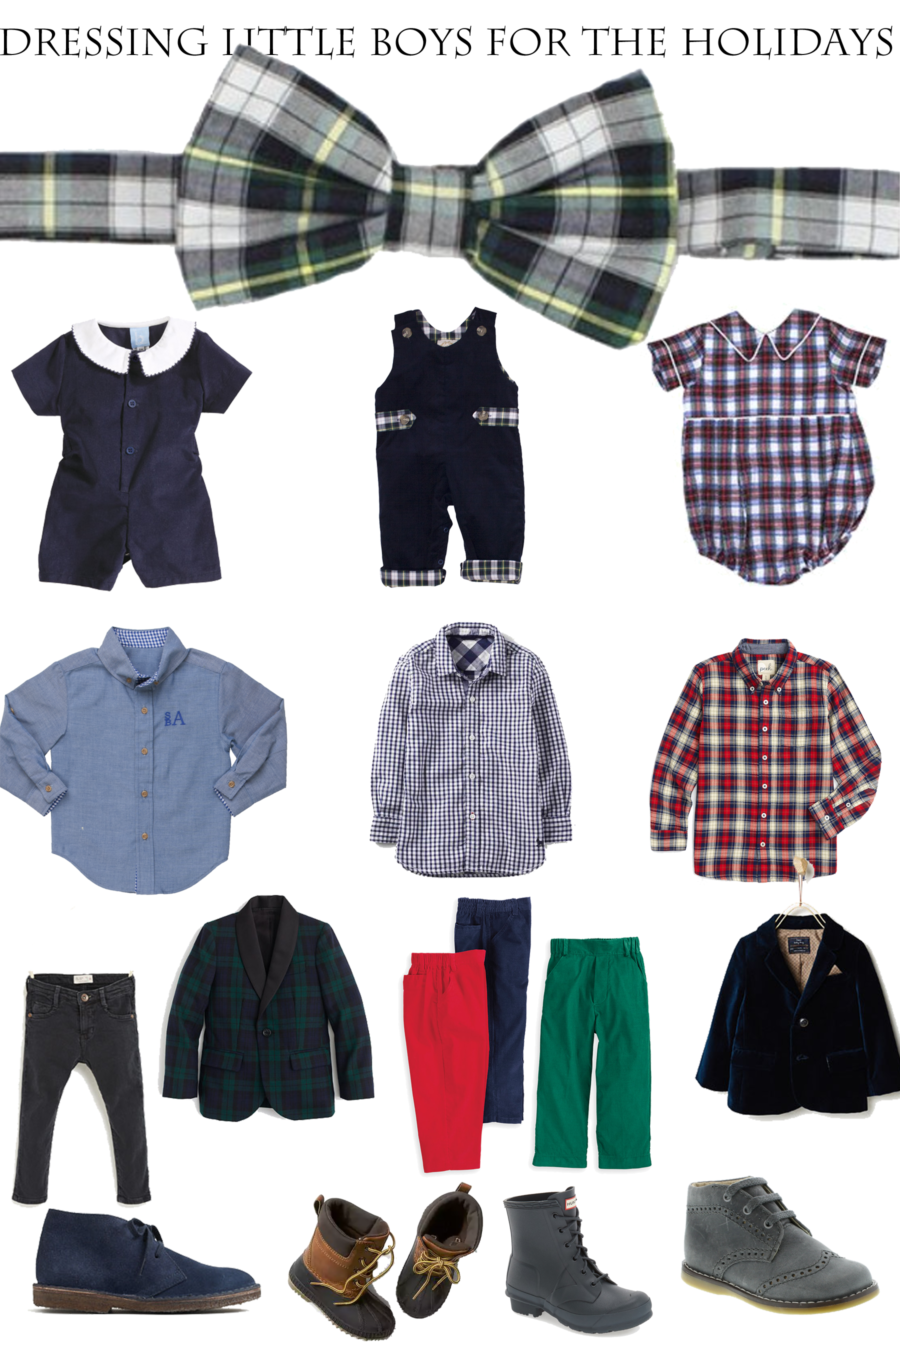 dressing little boys for the holidays